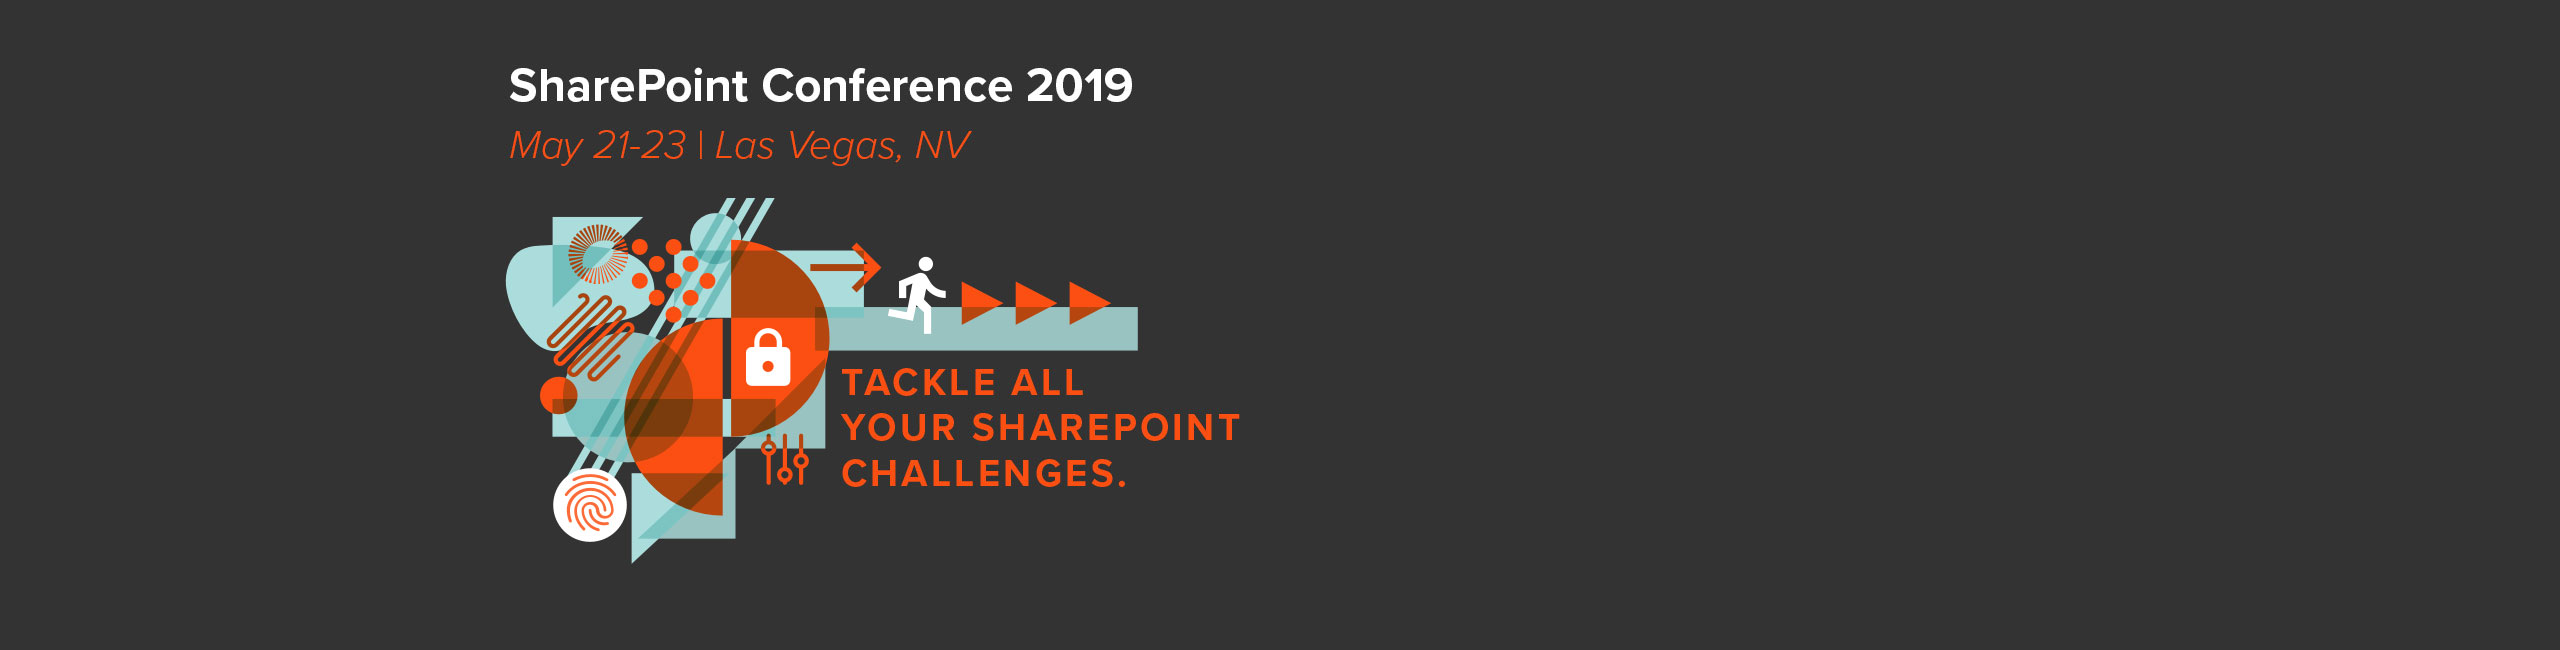 Join us for SharePoint Conference in Las Vegas for world-class training and networking!